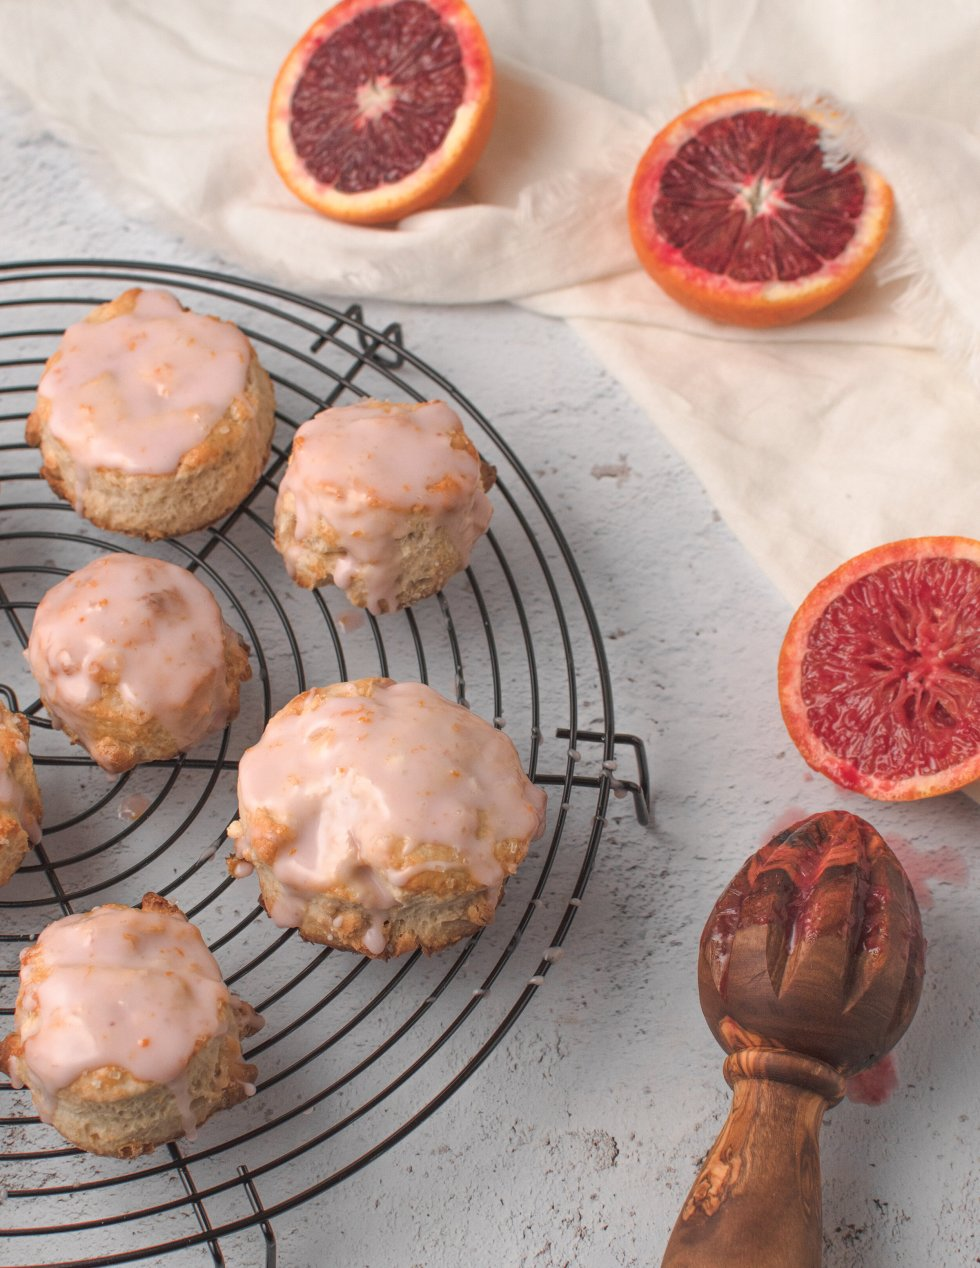 Blood orange scones with white chocolate chips and a blood orange glaze drip on a cooling rack next to sliced blood oranges.